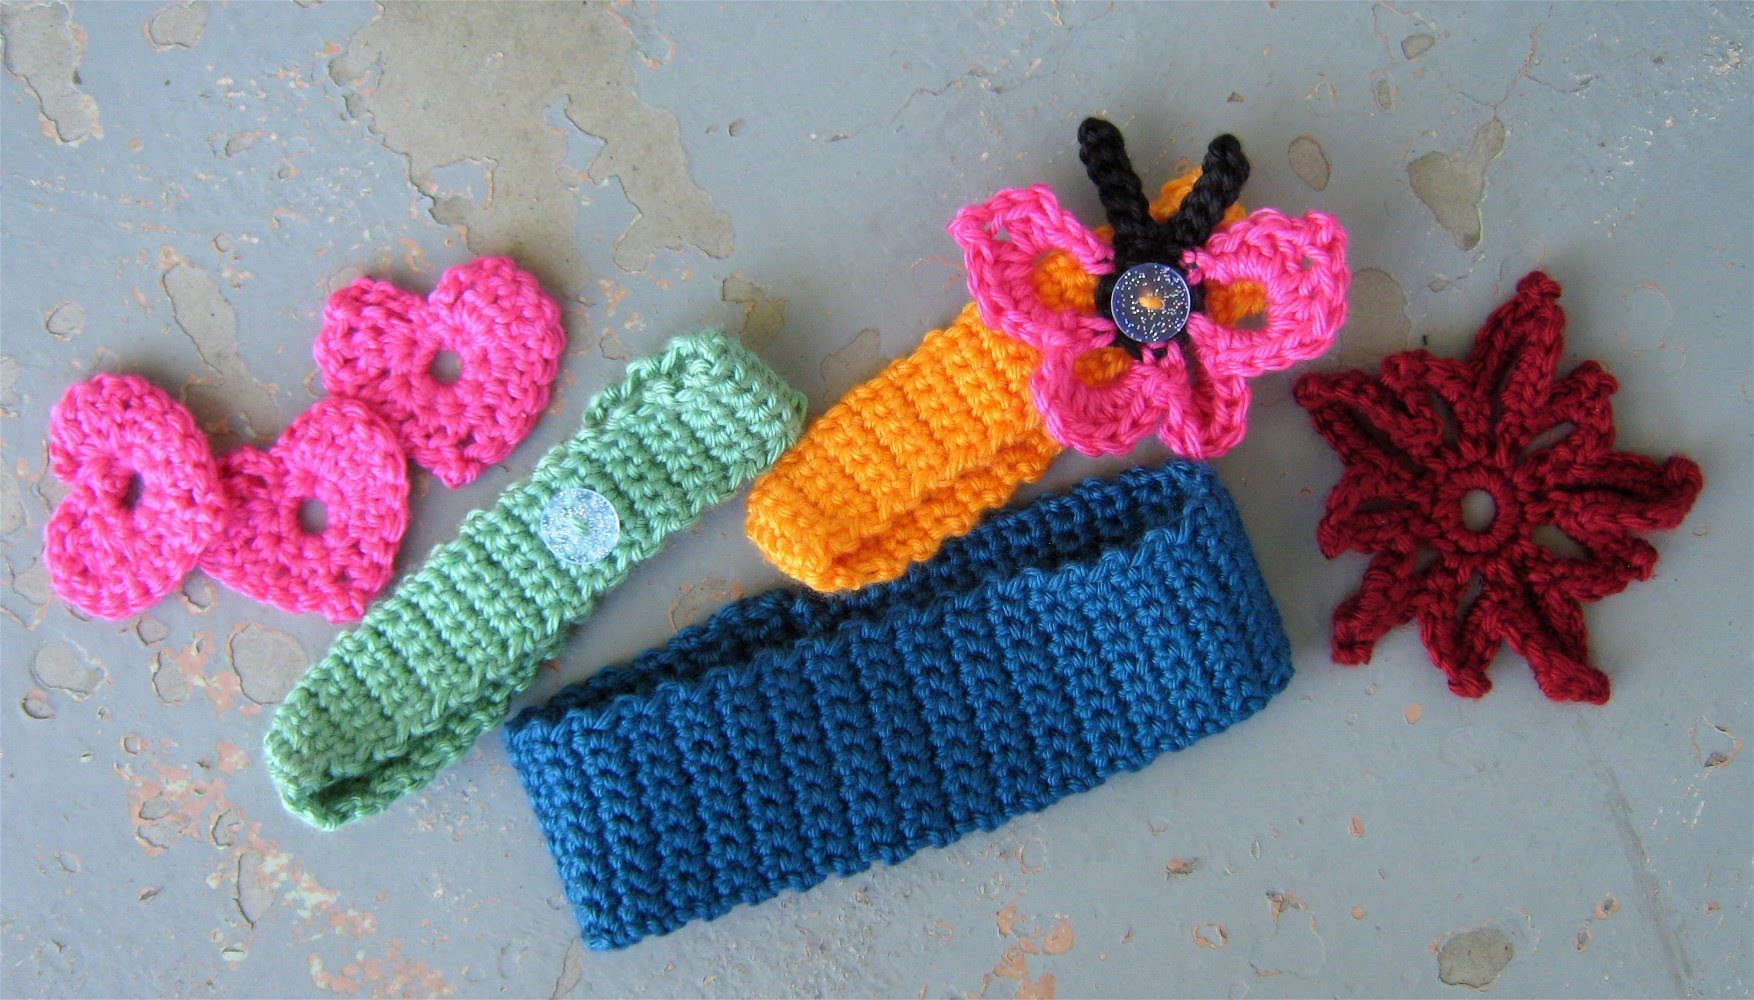 How to crochet a basic headband or hairband, easy